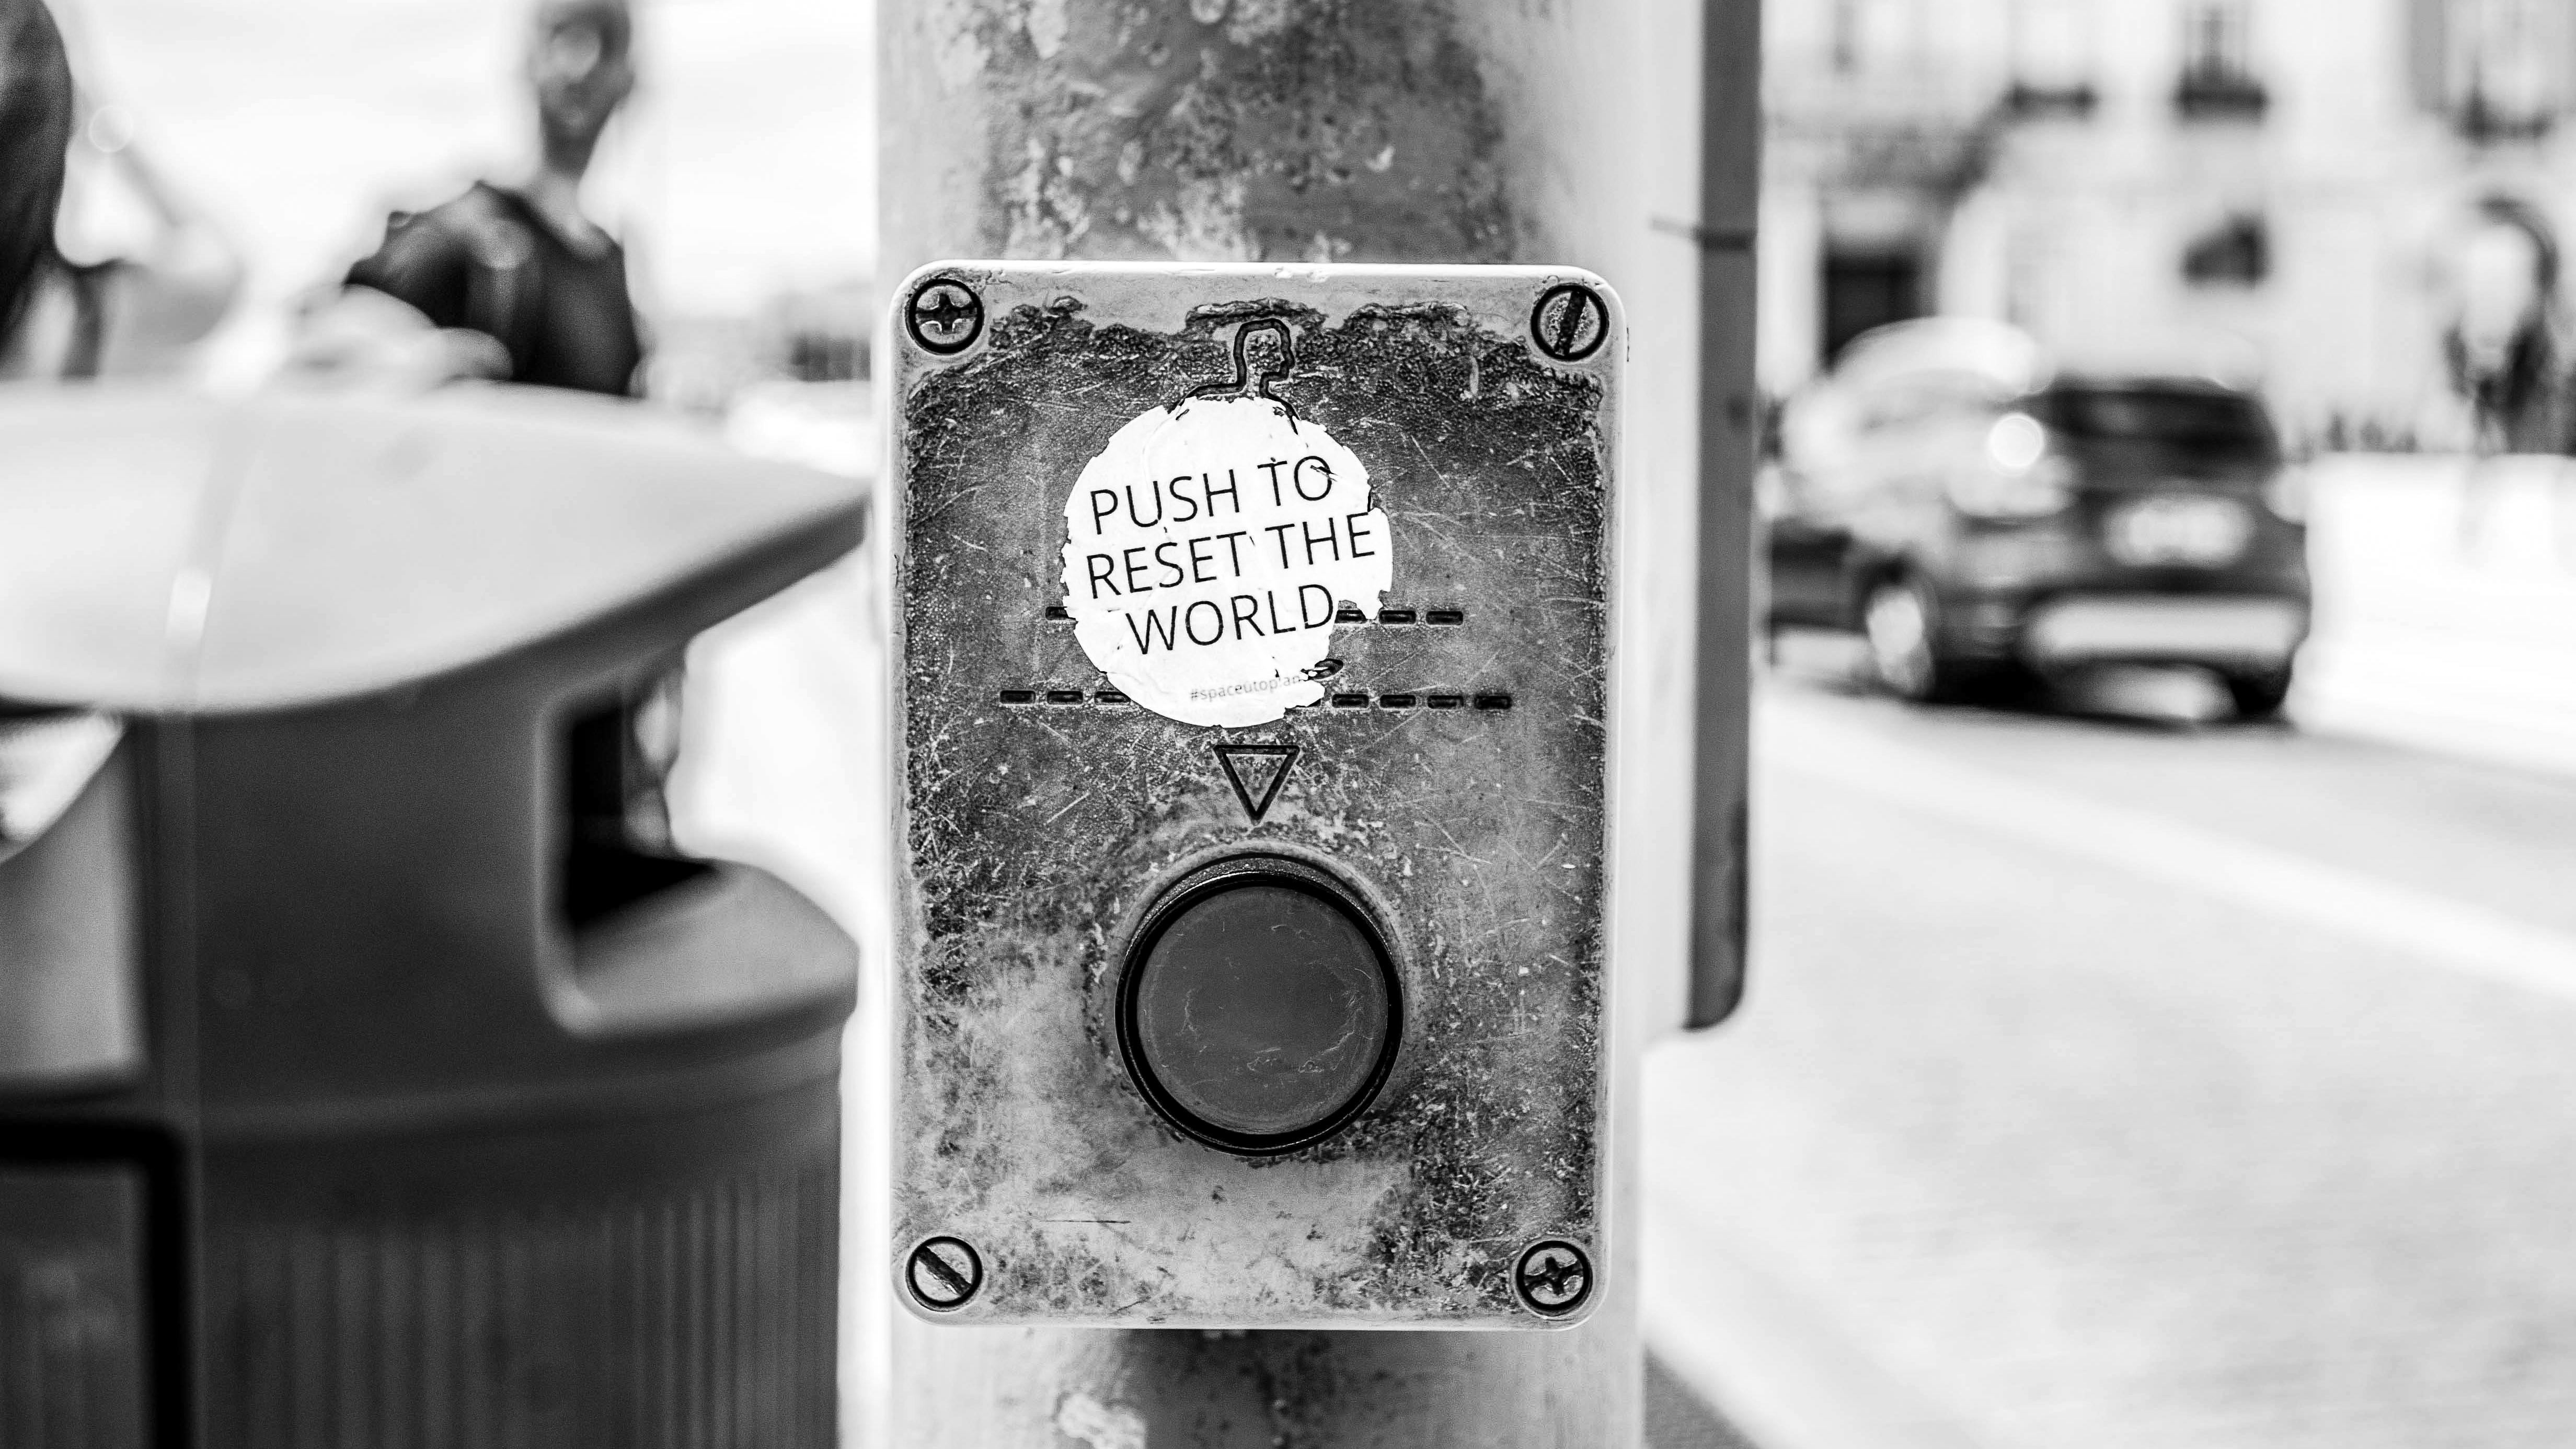 Push to reset the world By jose-antonio-gallego-vázquez